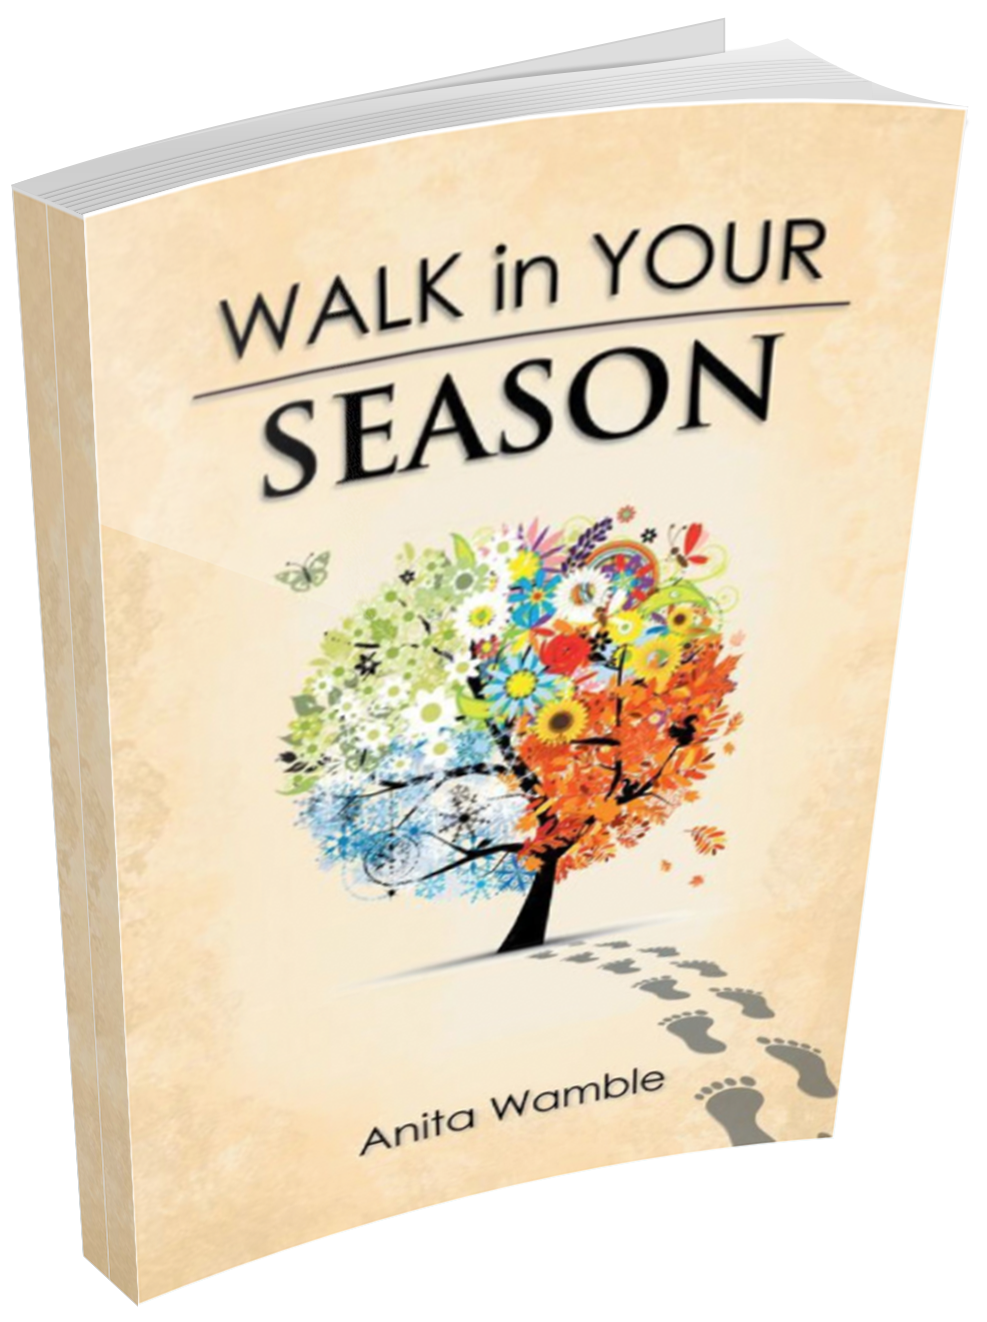 walkinyourseason_mockup